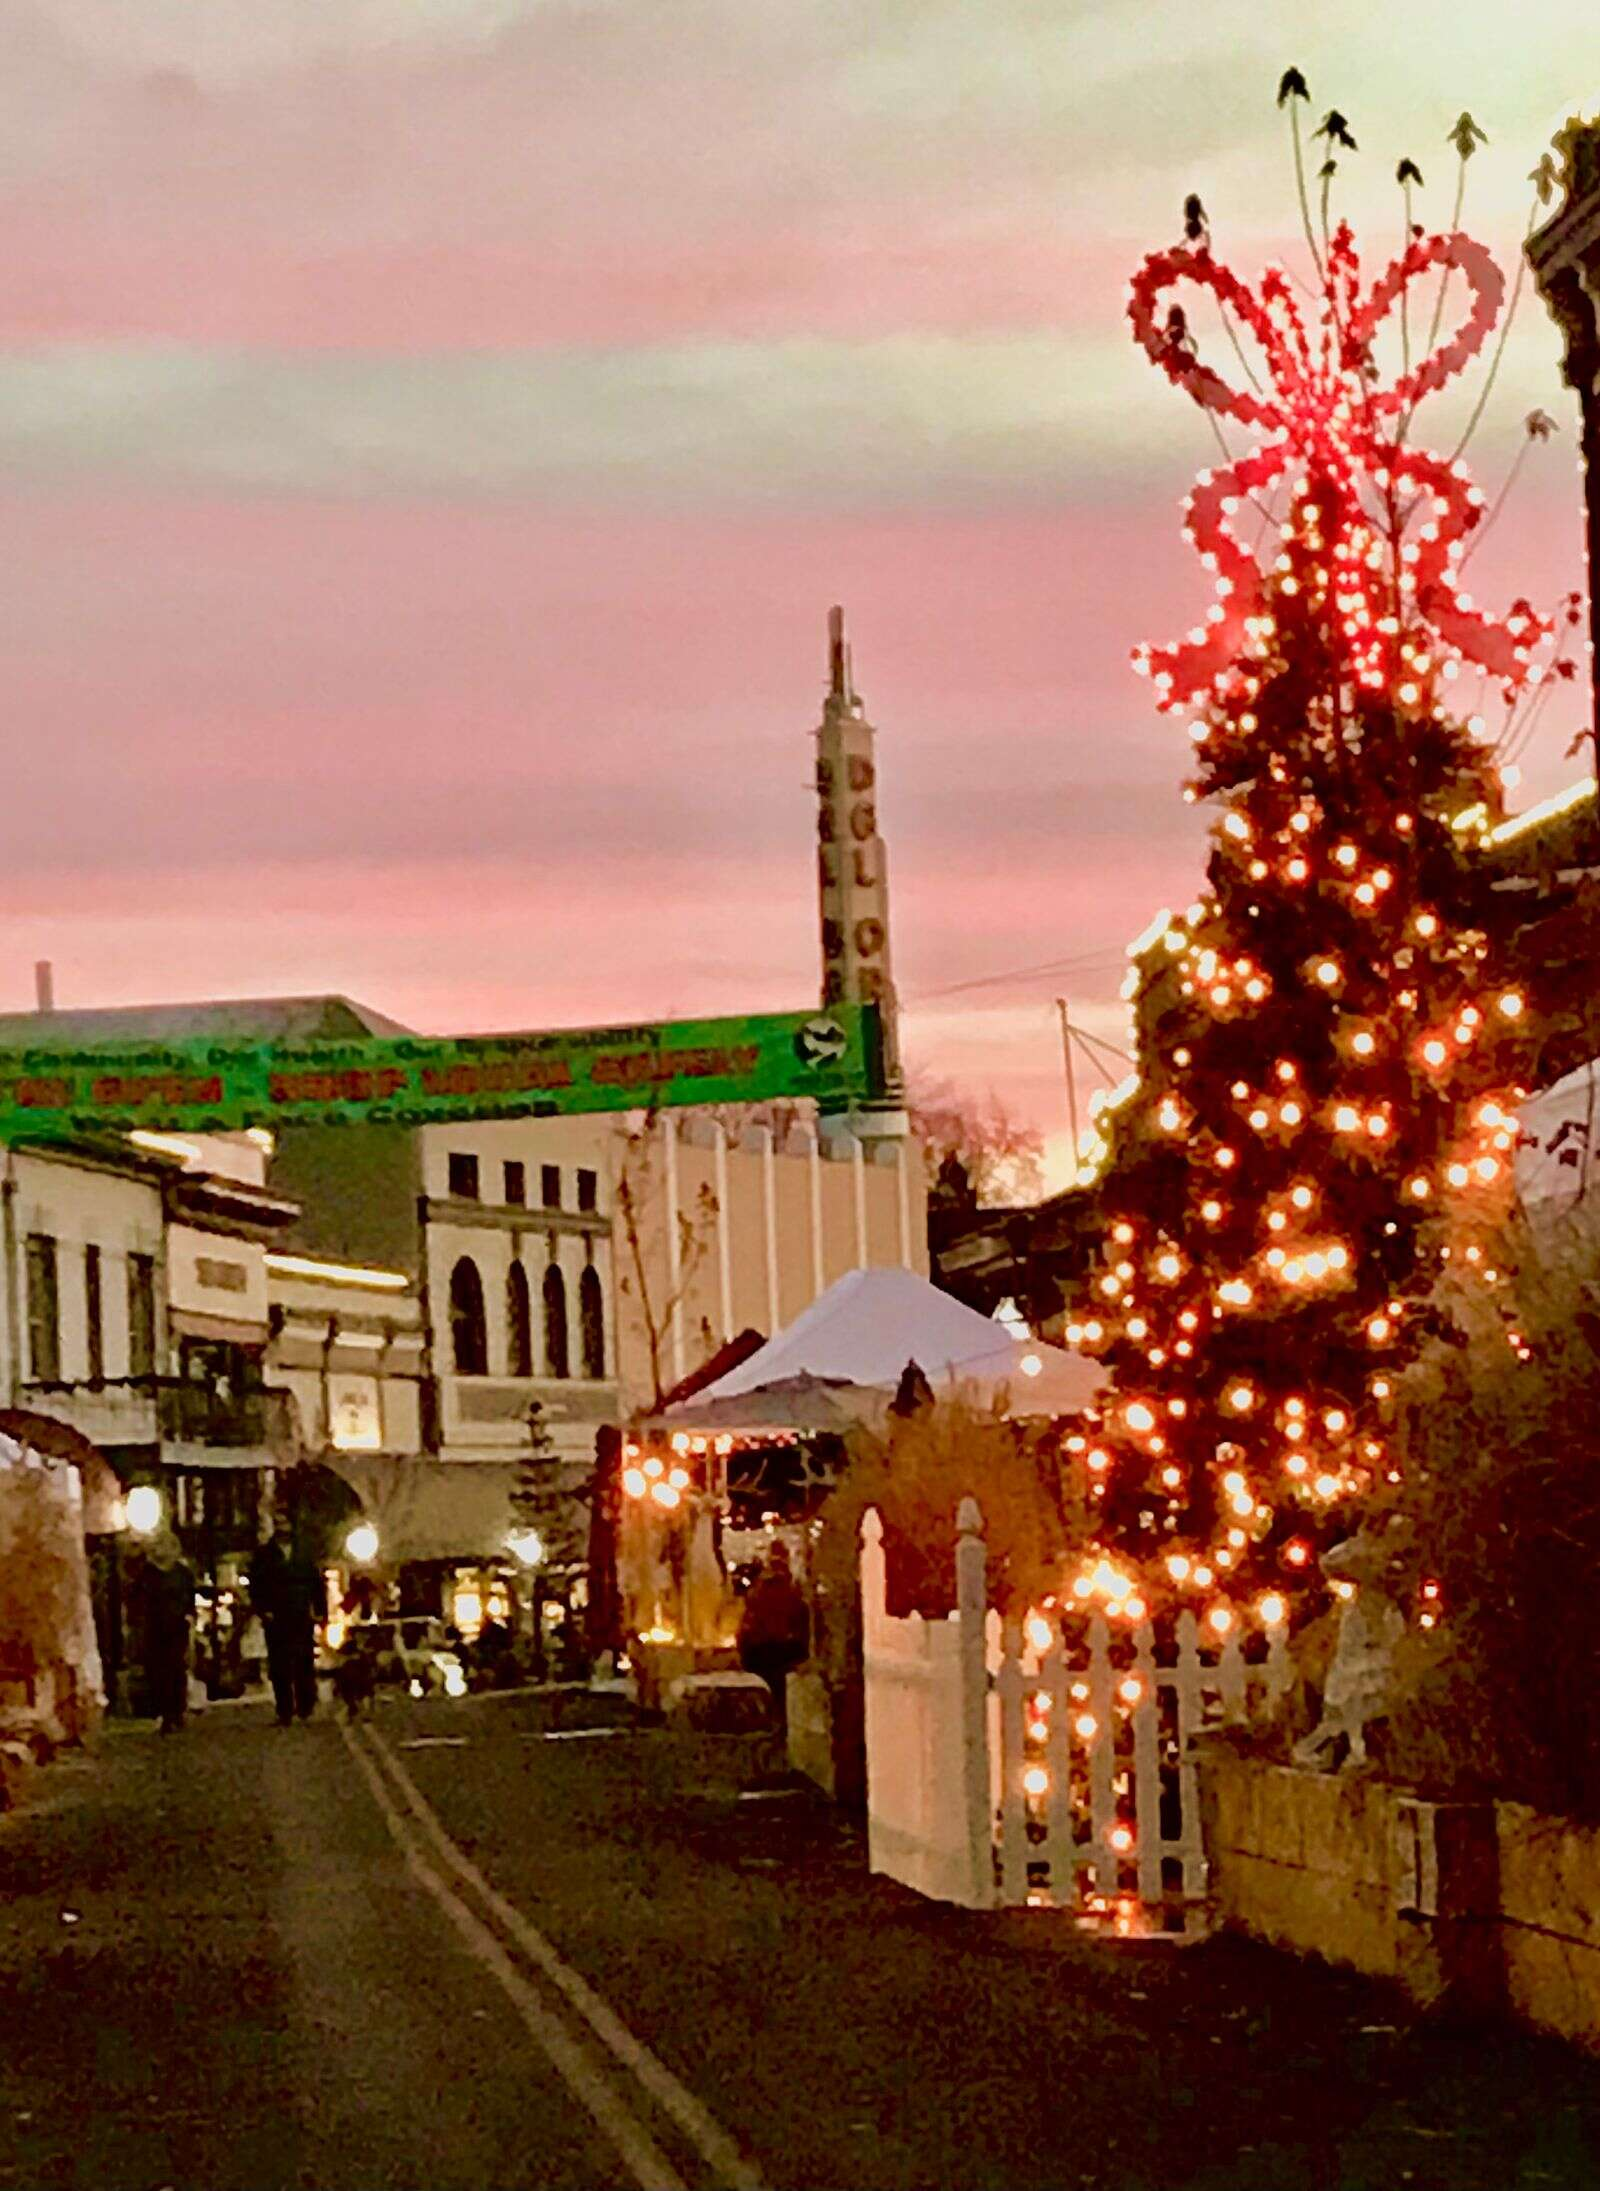 Downtown Grass Valley at dusk is very festive looking.   Submitted by Joanne Bolton